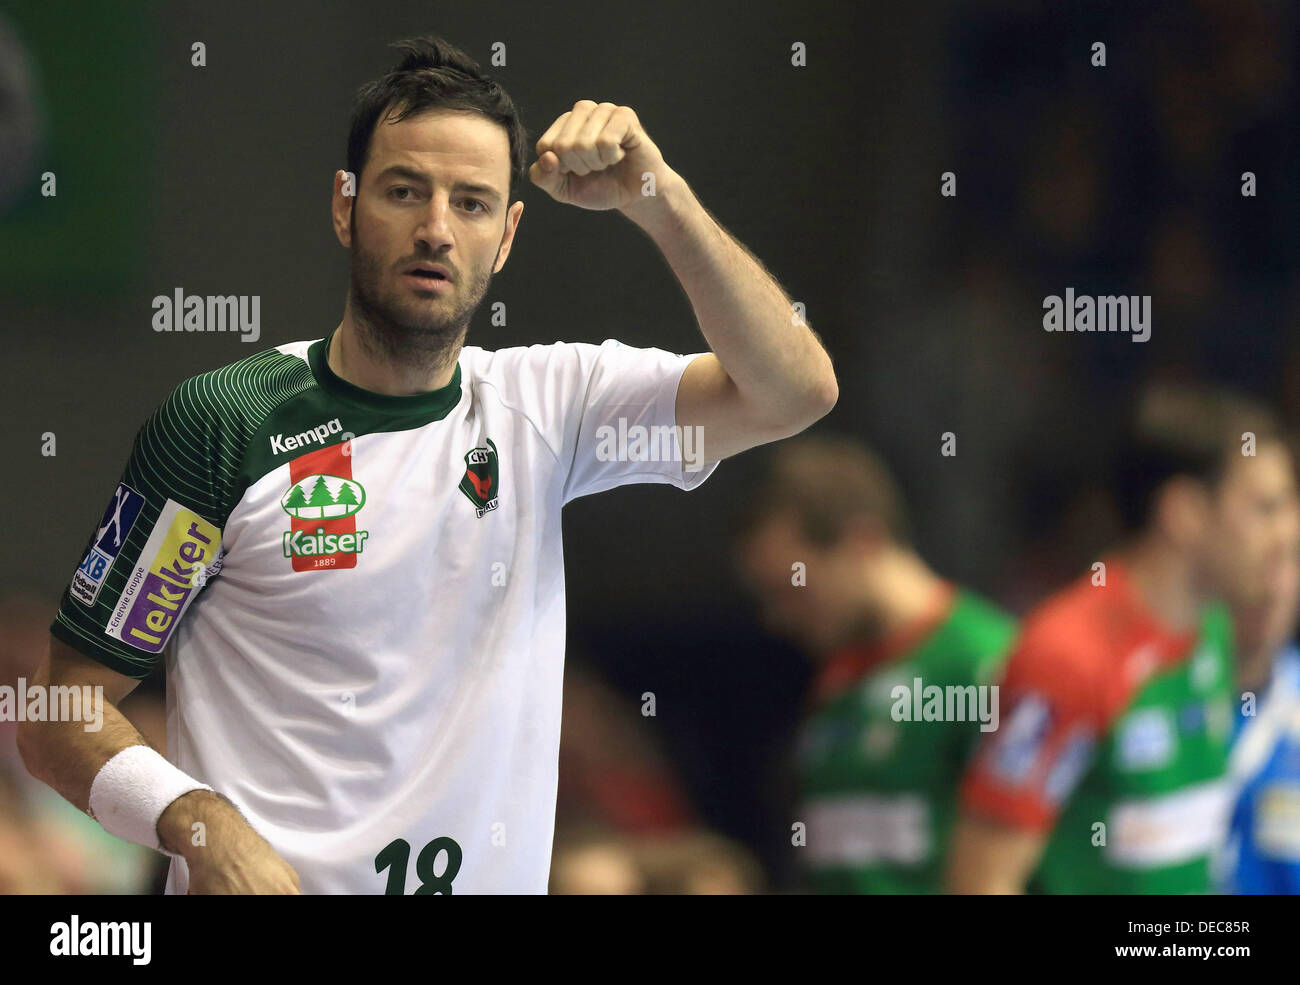 Berlin's Iker Romero celebrates during the Bundesliga handball match between SC Magdeburg and Fuechse Berlin at Getec-Arena in Magdeburg, Germany, 15 September 2013. Photo:JENS WOLF - Stock Image